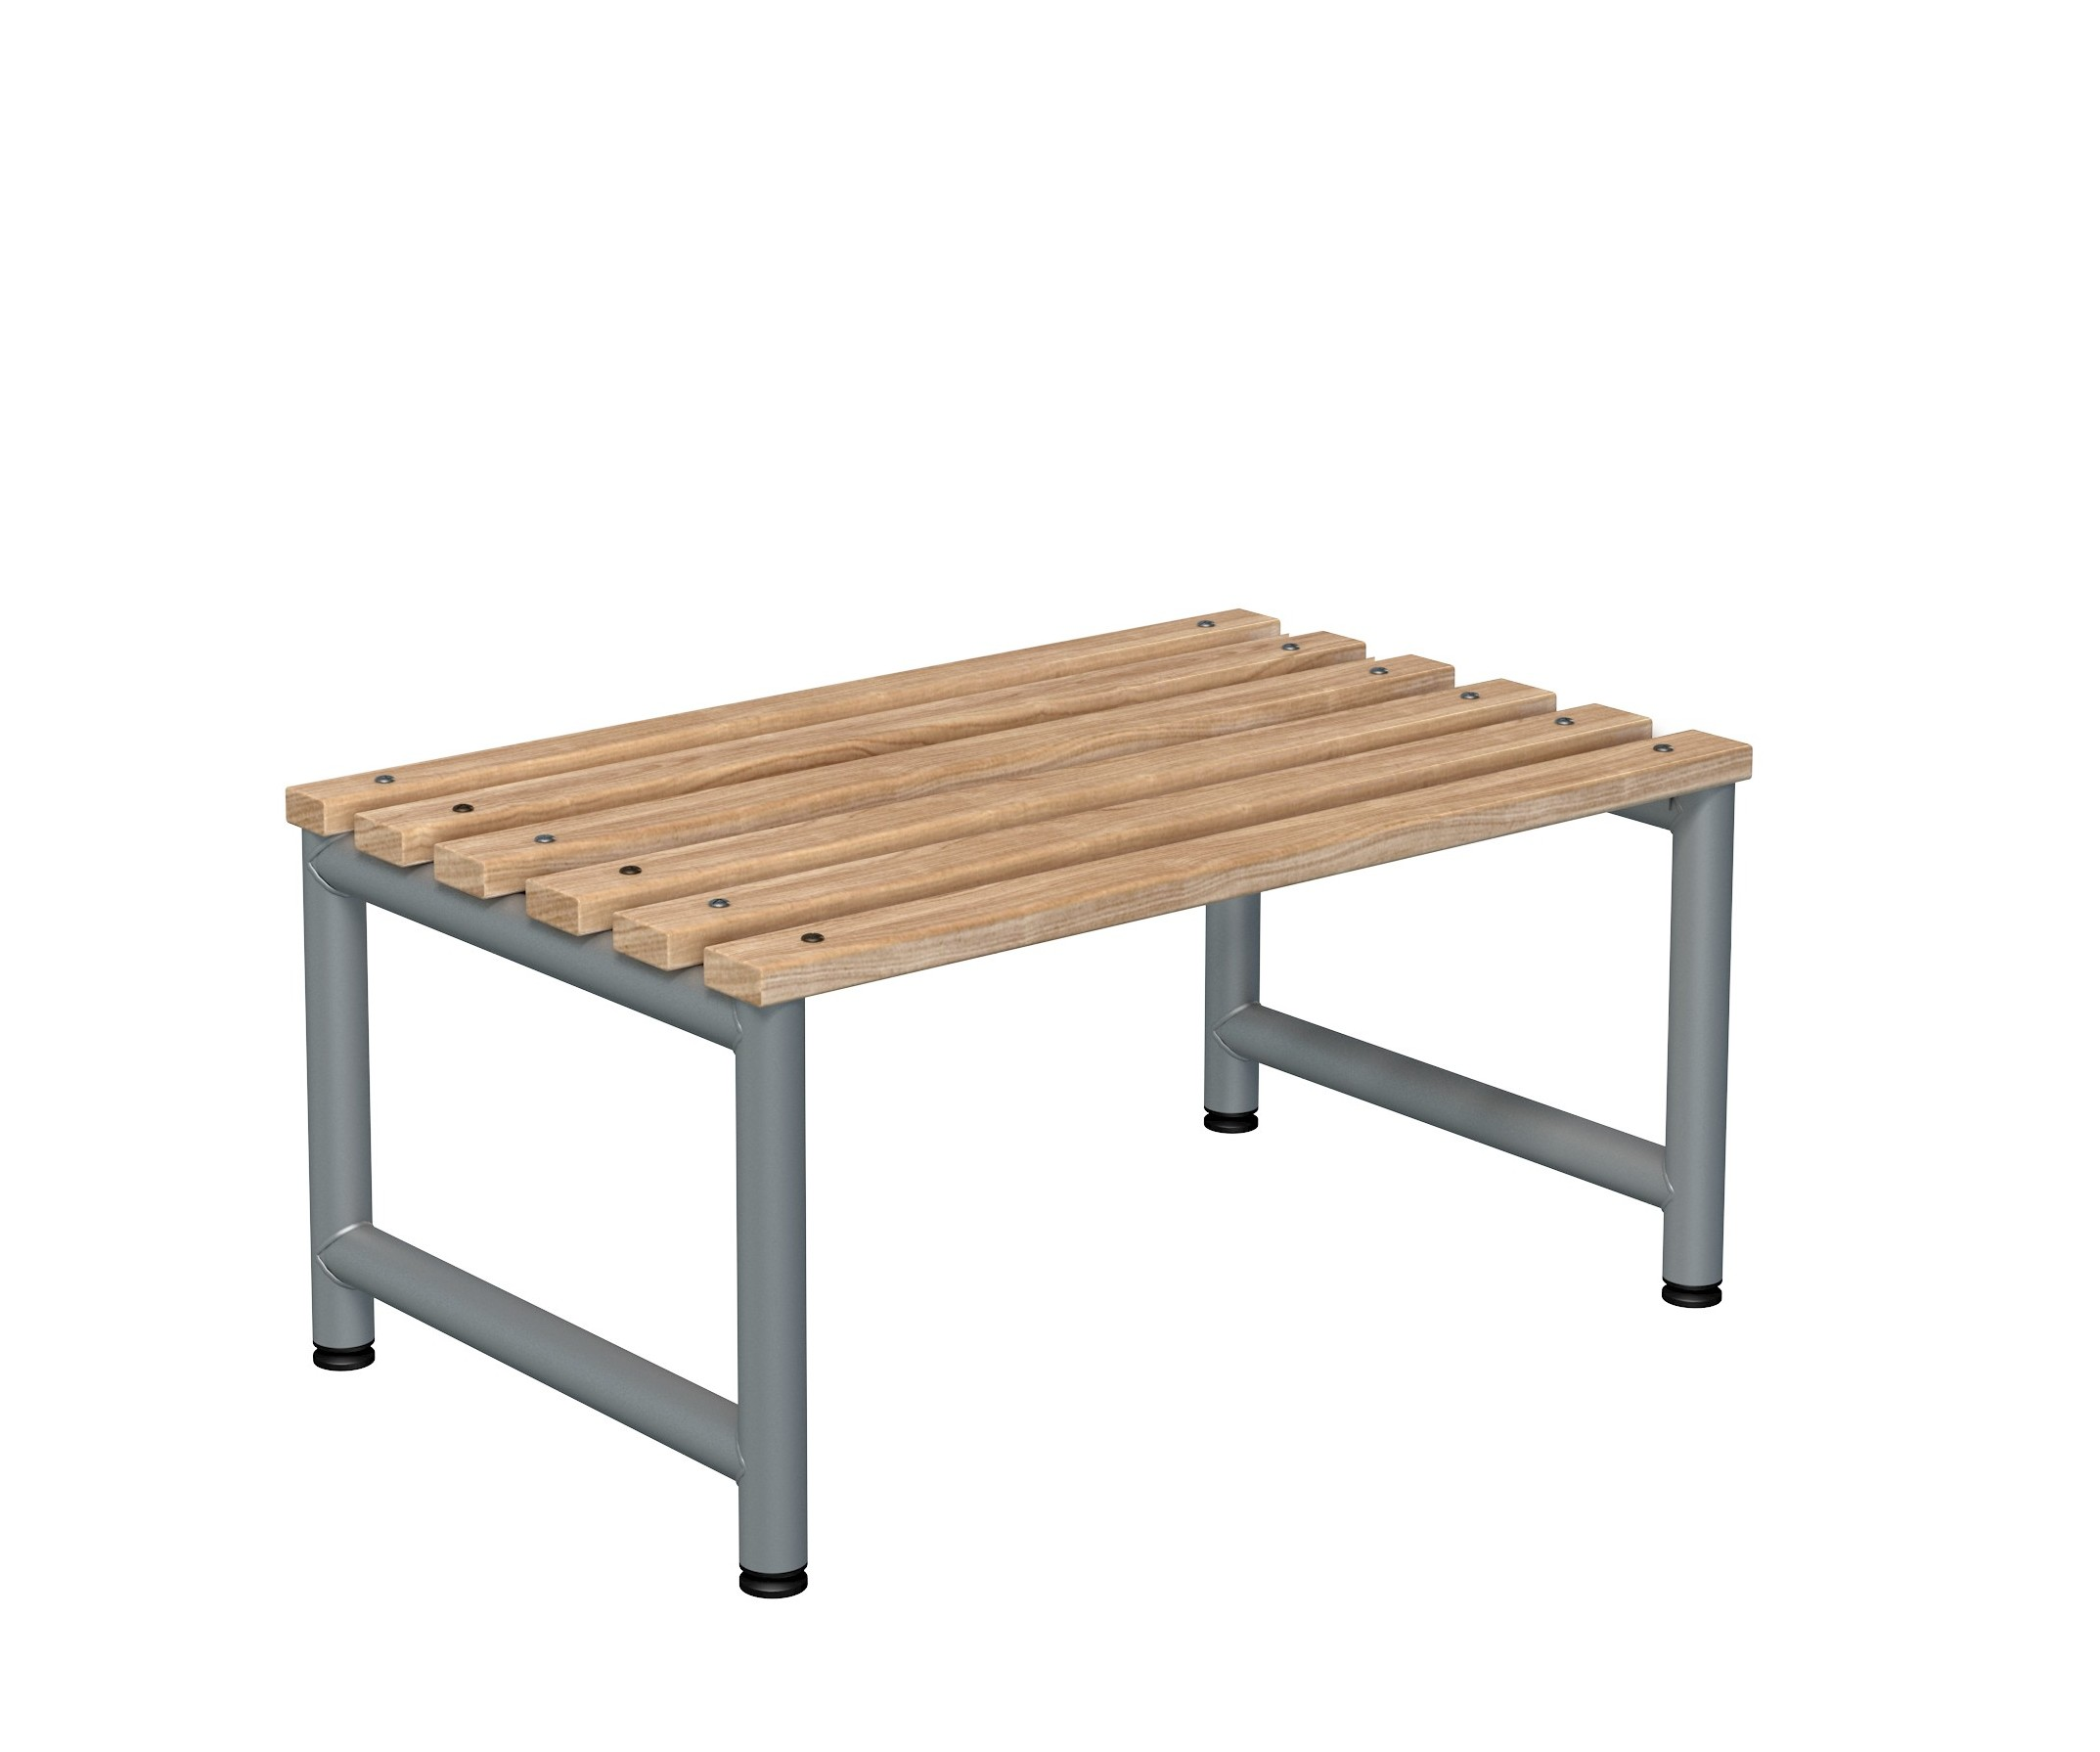 Double Sided Bench Type B - Junior